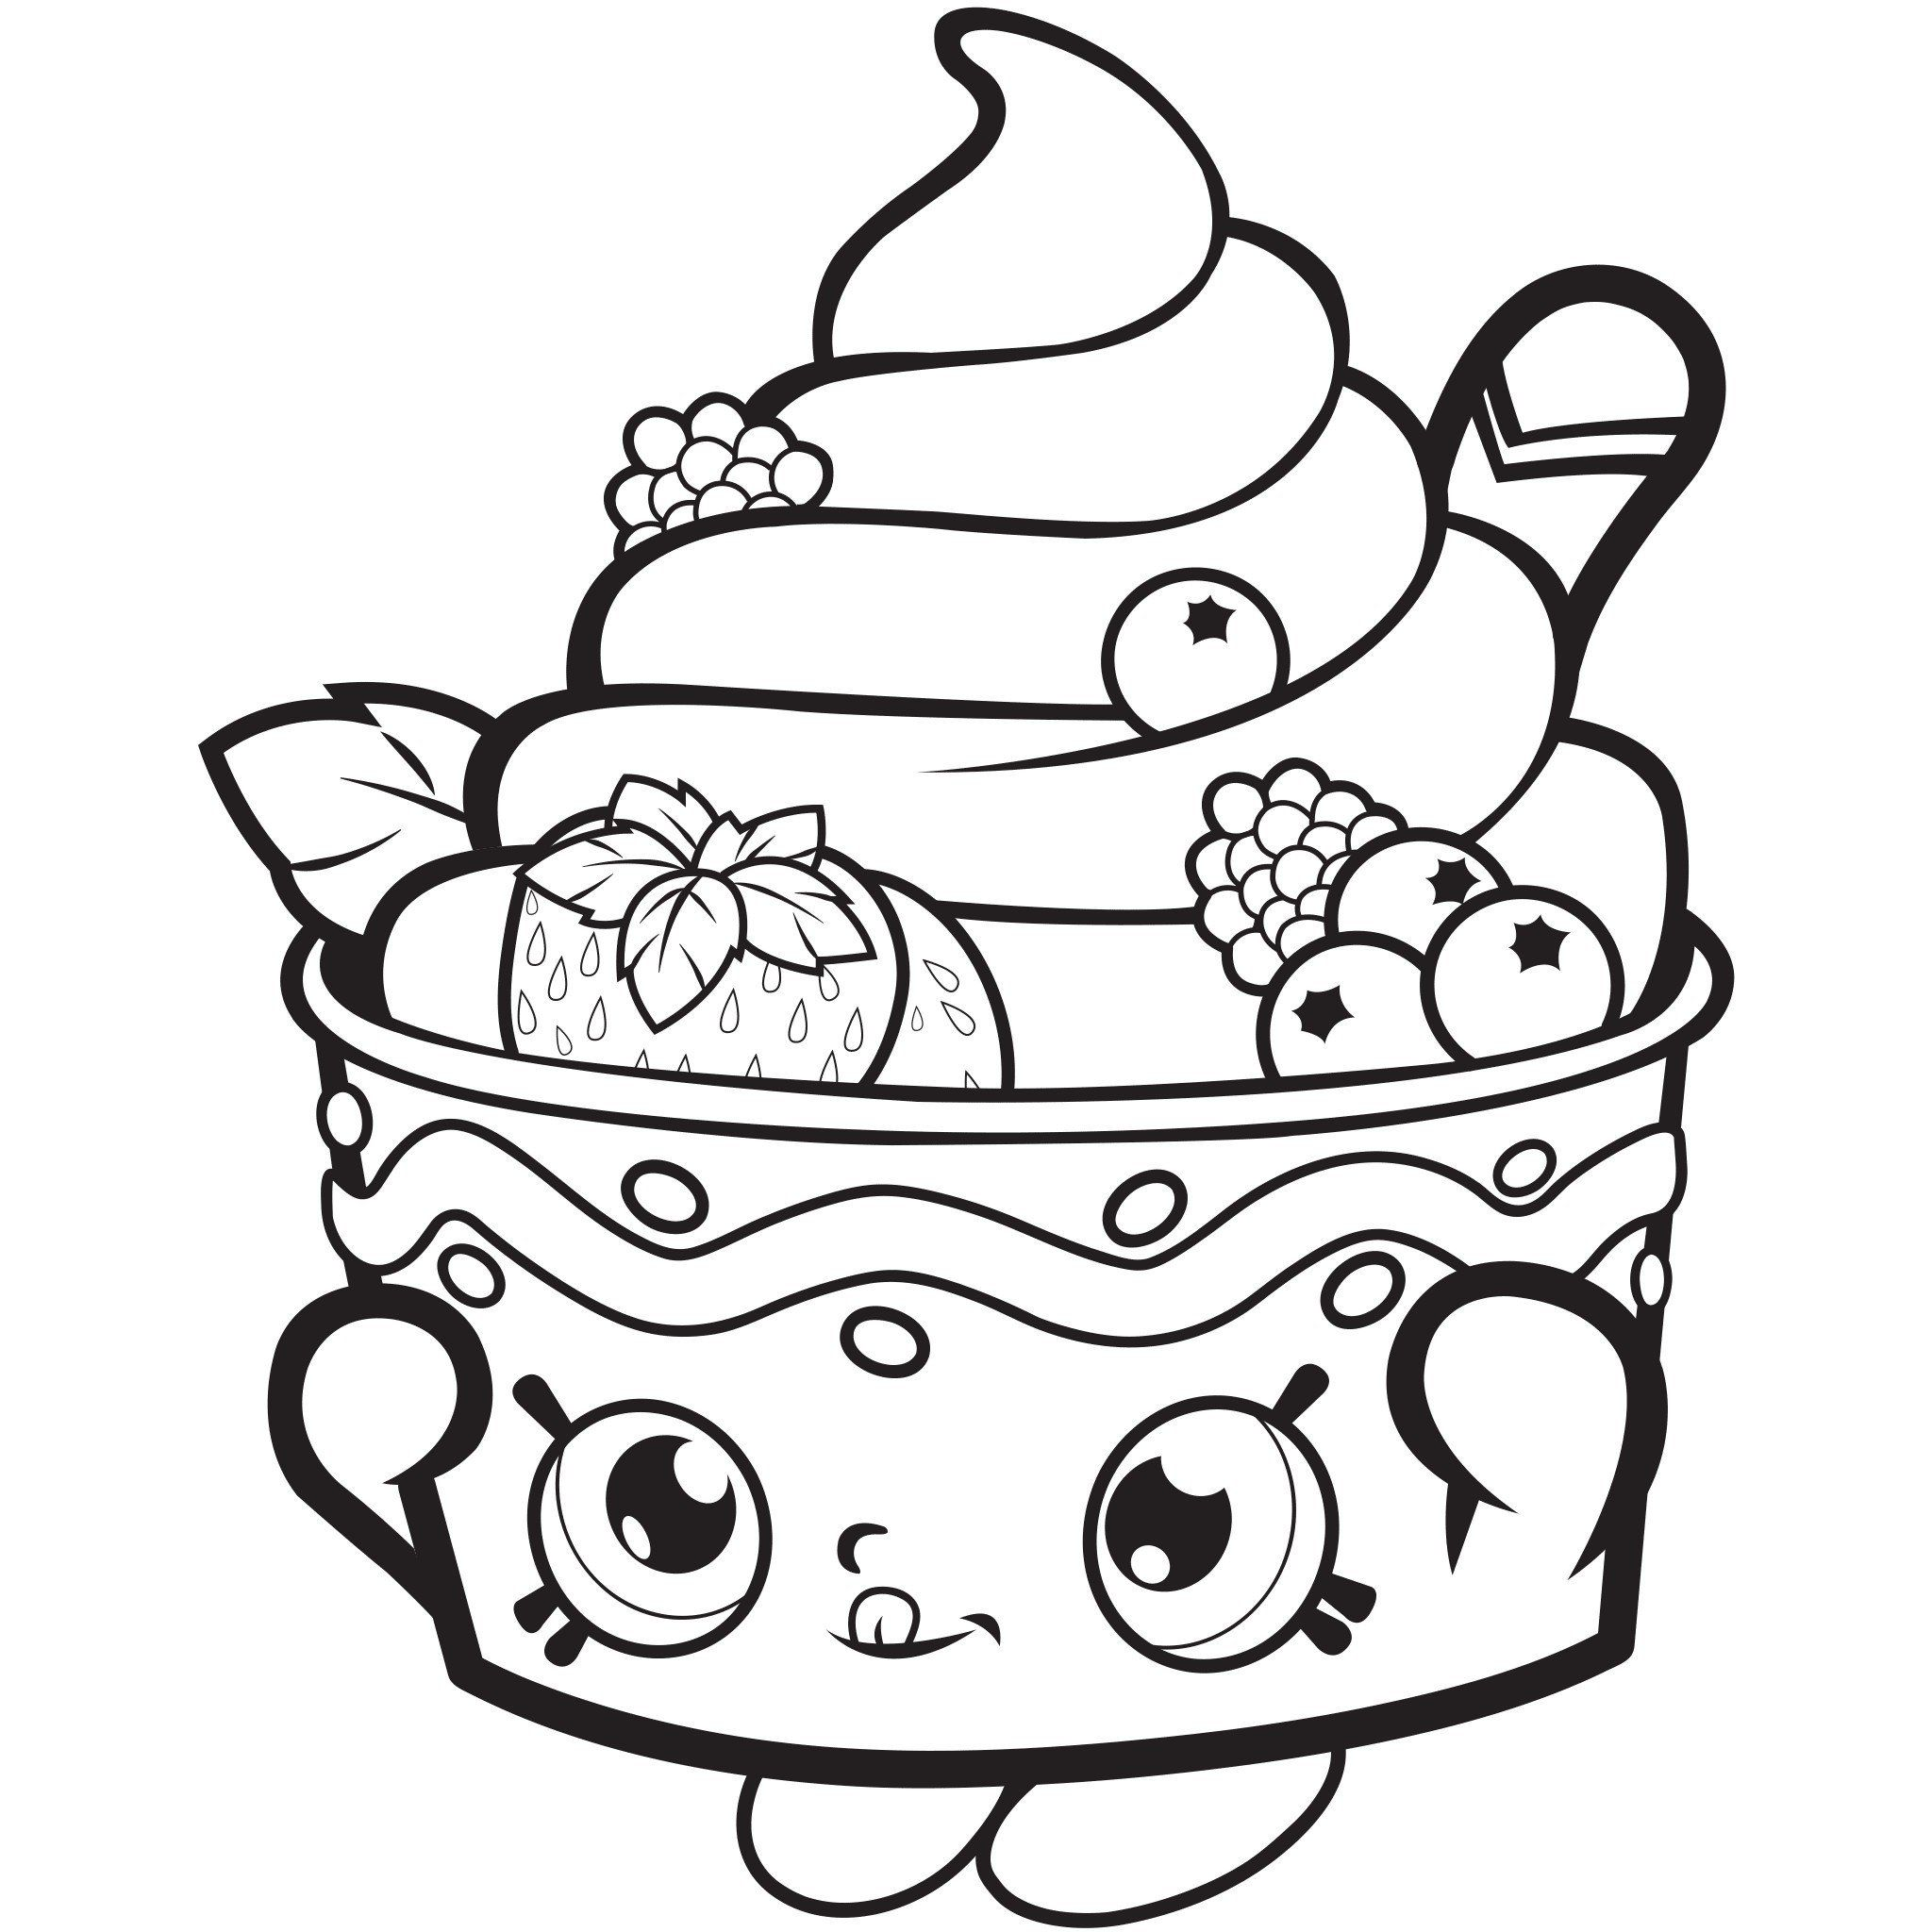 Shopkins Printable Coloring Pages Unique New Shopkins Birthday Cake Colorin In 2020 Shopkin Coloring Pages Turtle Coloring Pages Shopkins Coloring Pages Free Printable